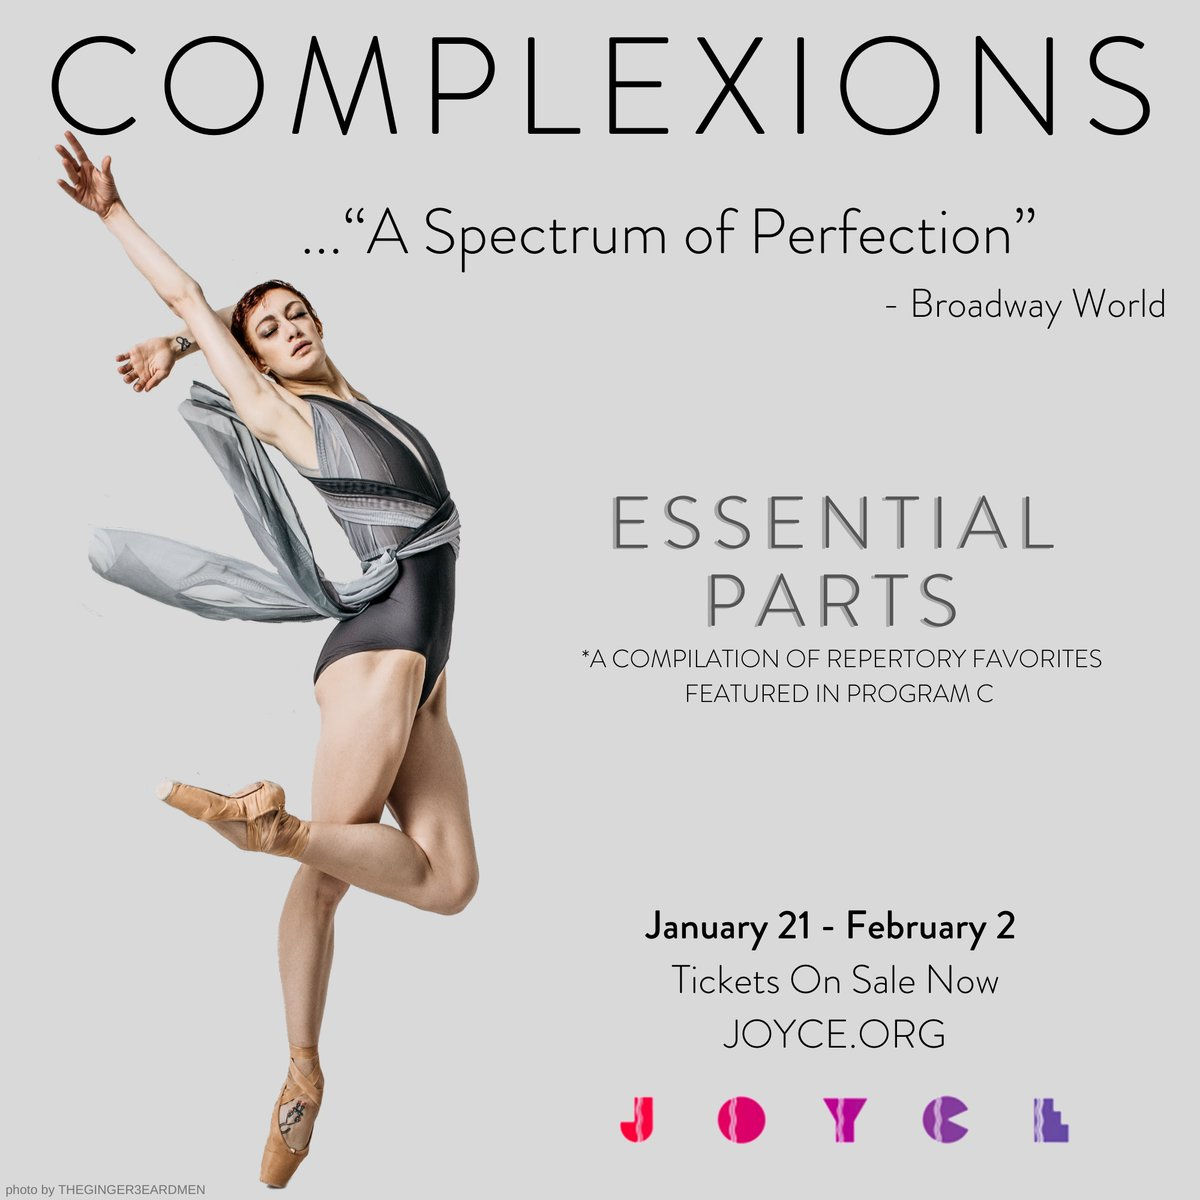 Beyond excited to see another performance by @complexionsdance at @TheJoyceTheater this weekend! Catch them perform in New York City through Feb 2! #JoyceTheater #GetCloserToDance #Complexions #contemporary #ballet #sponsored https://t.co/8U1HfM1Nju